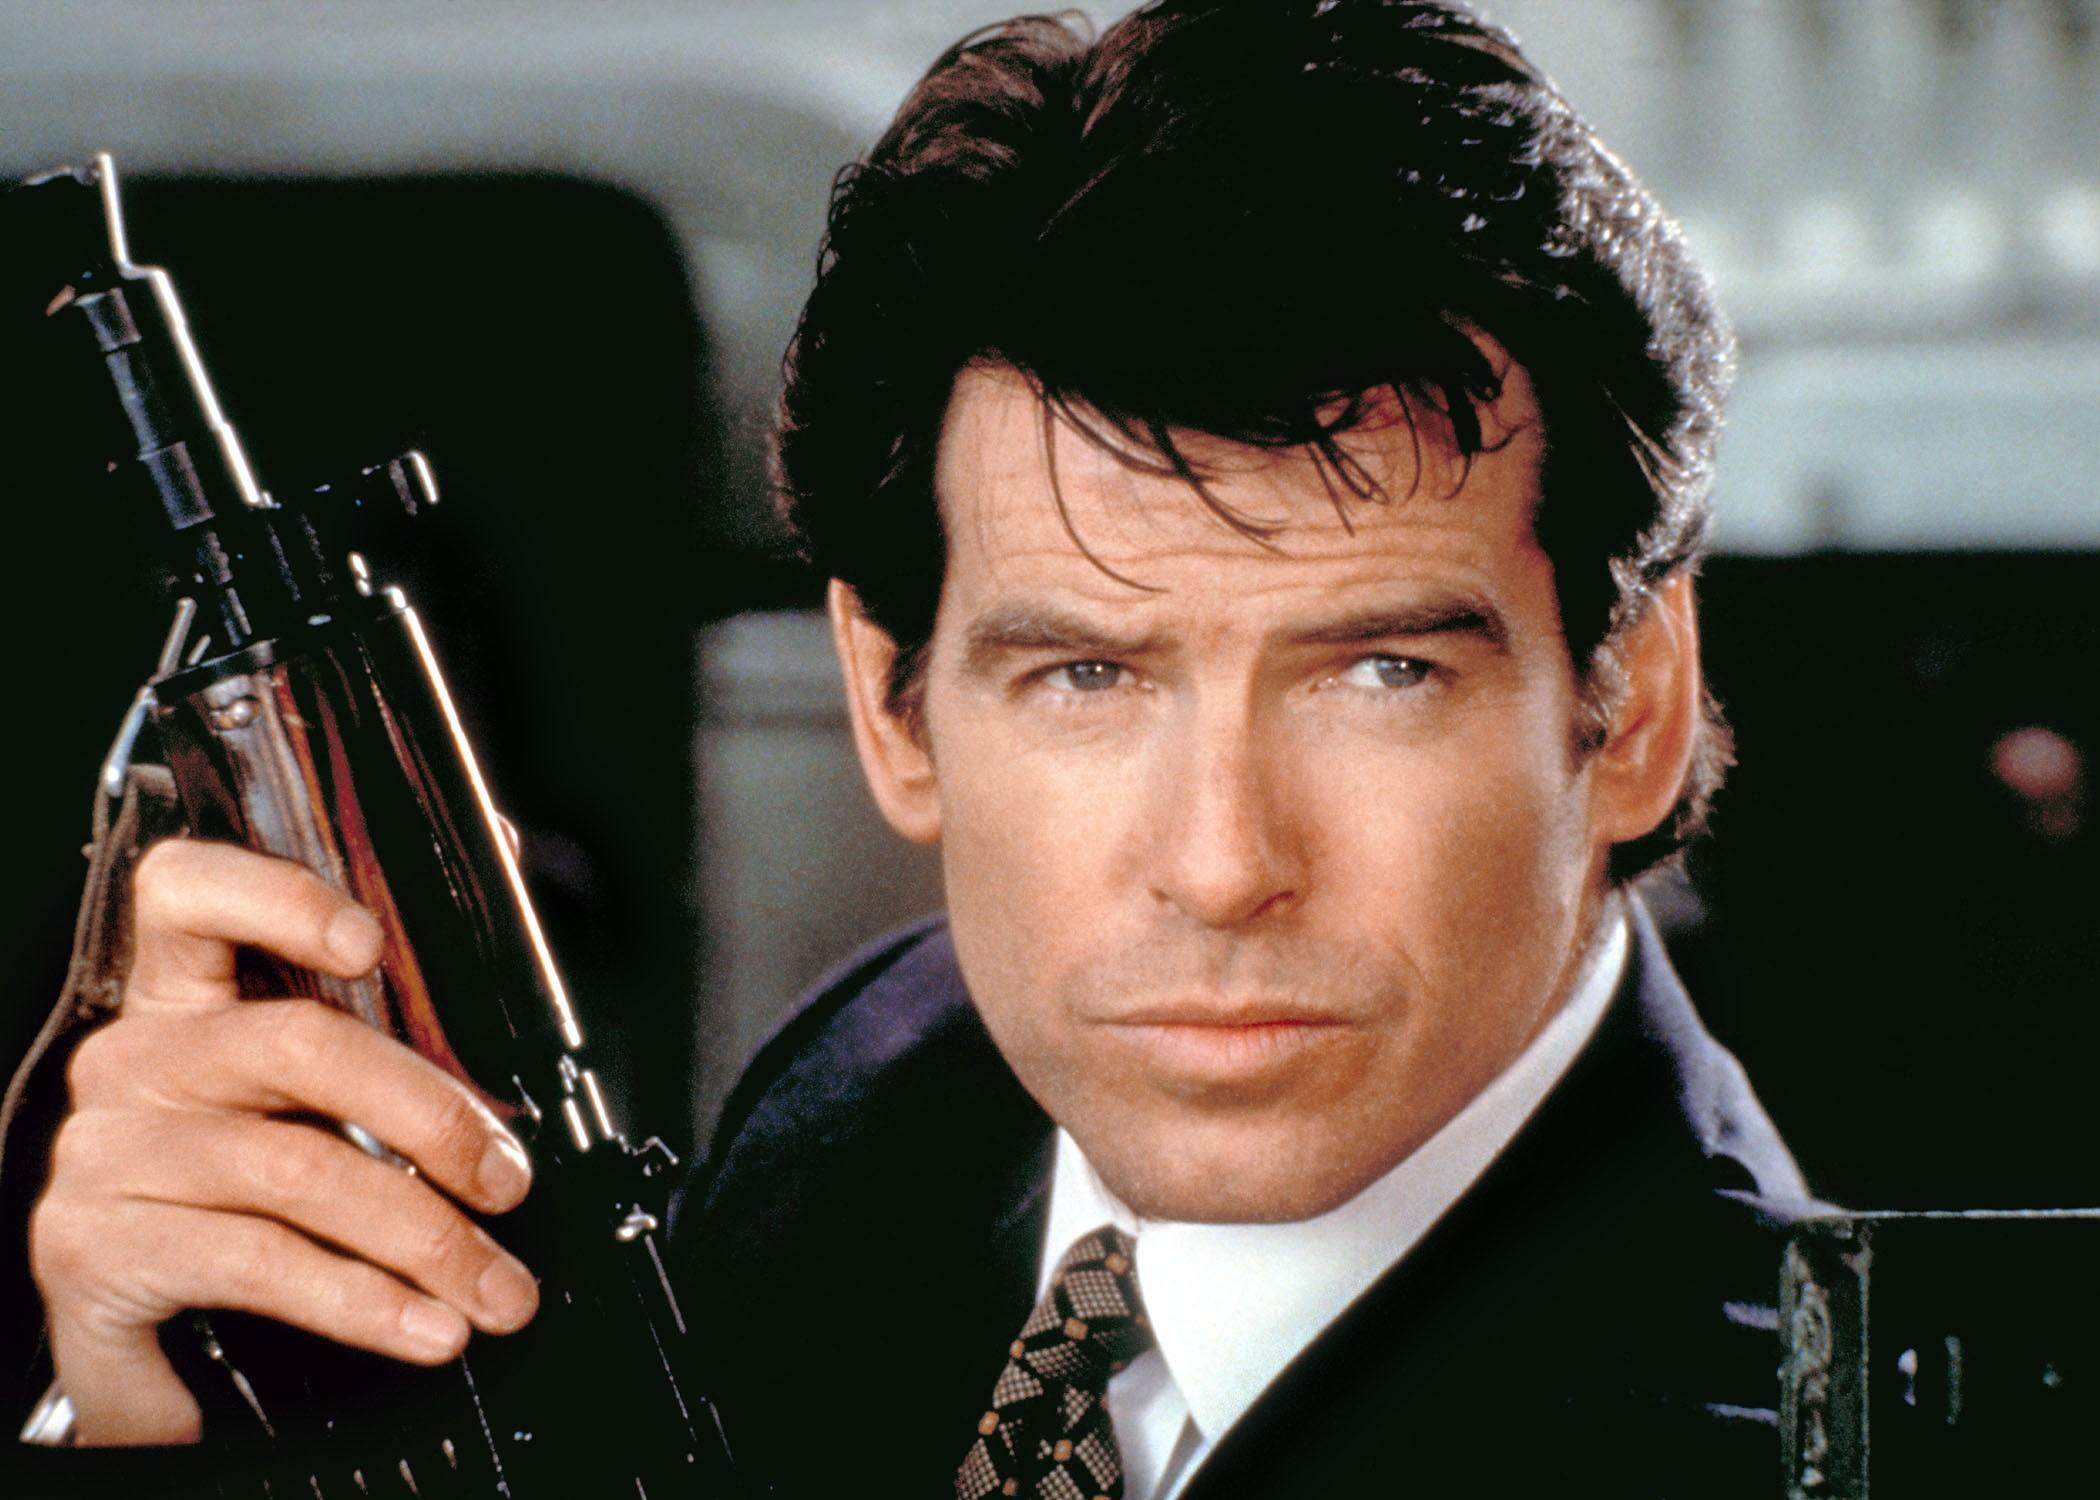 Pierce Brosnan as James Bond in Goldeneye (1995)